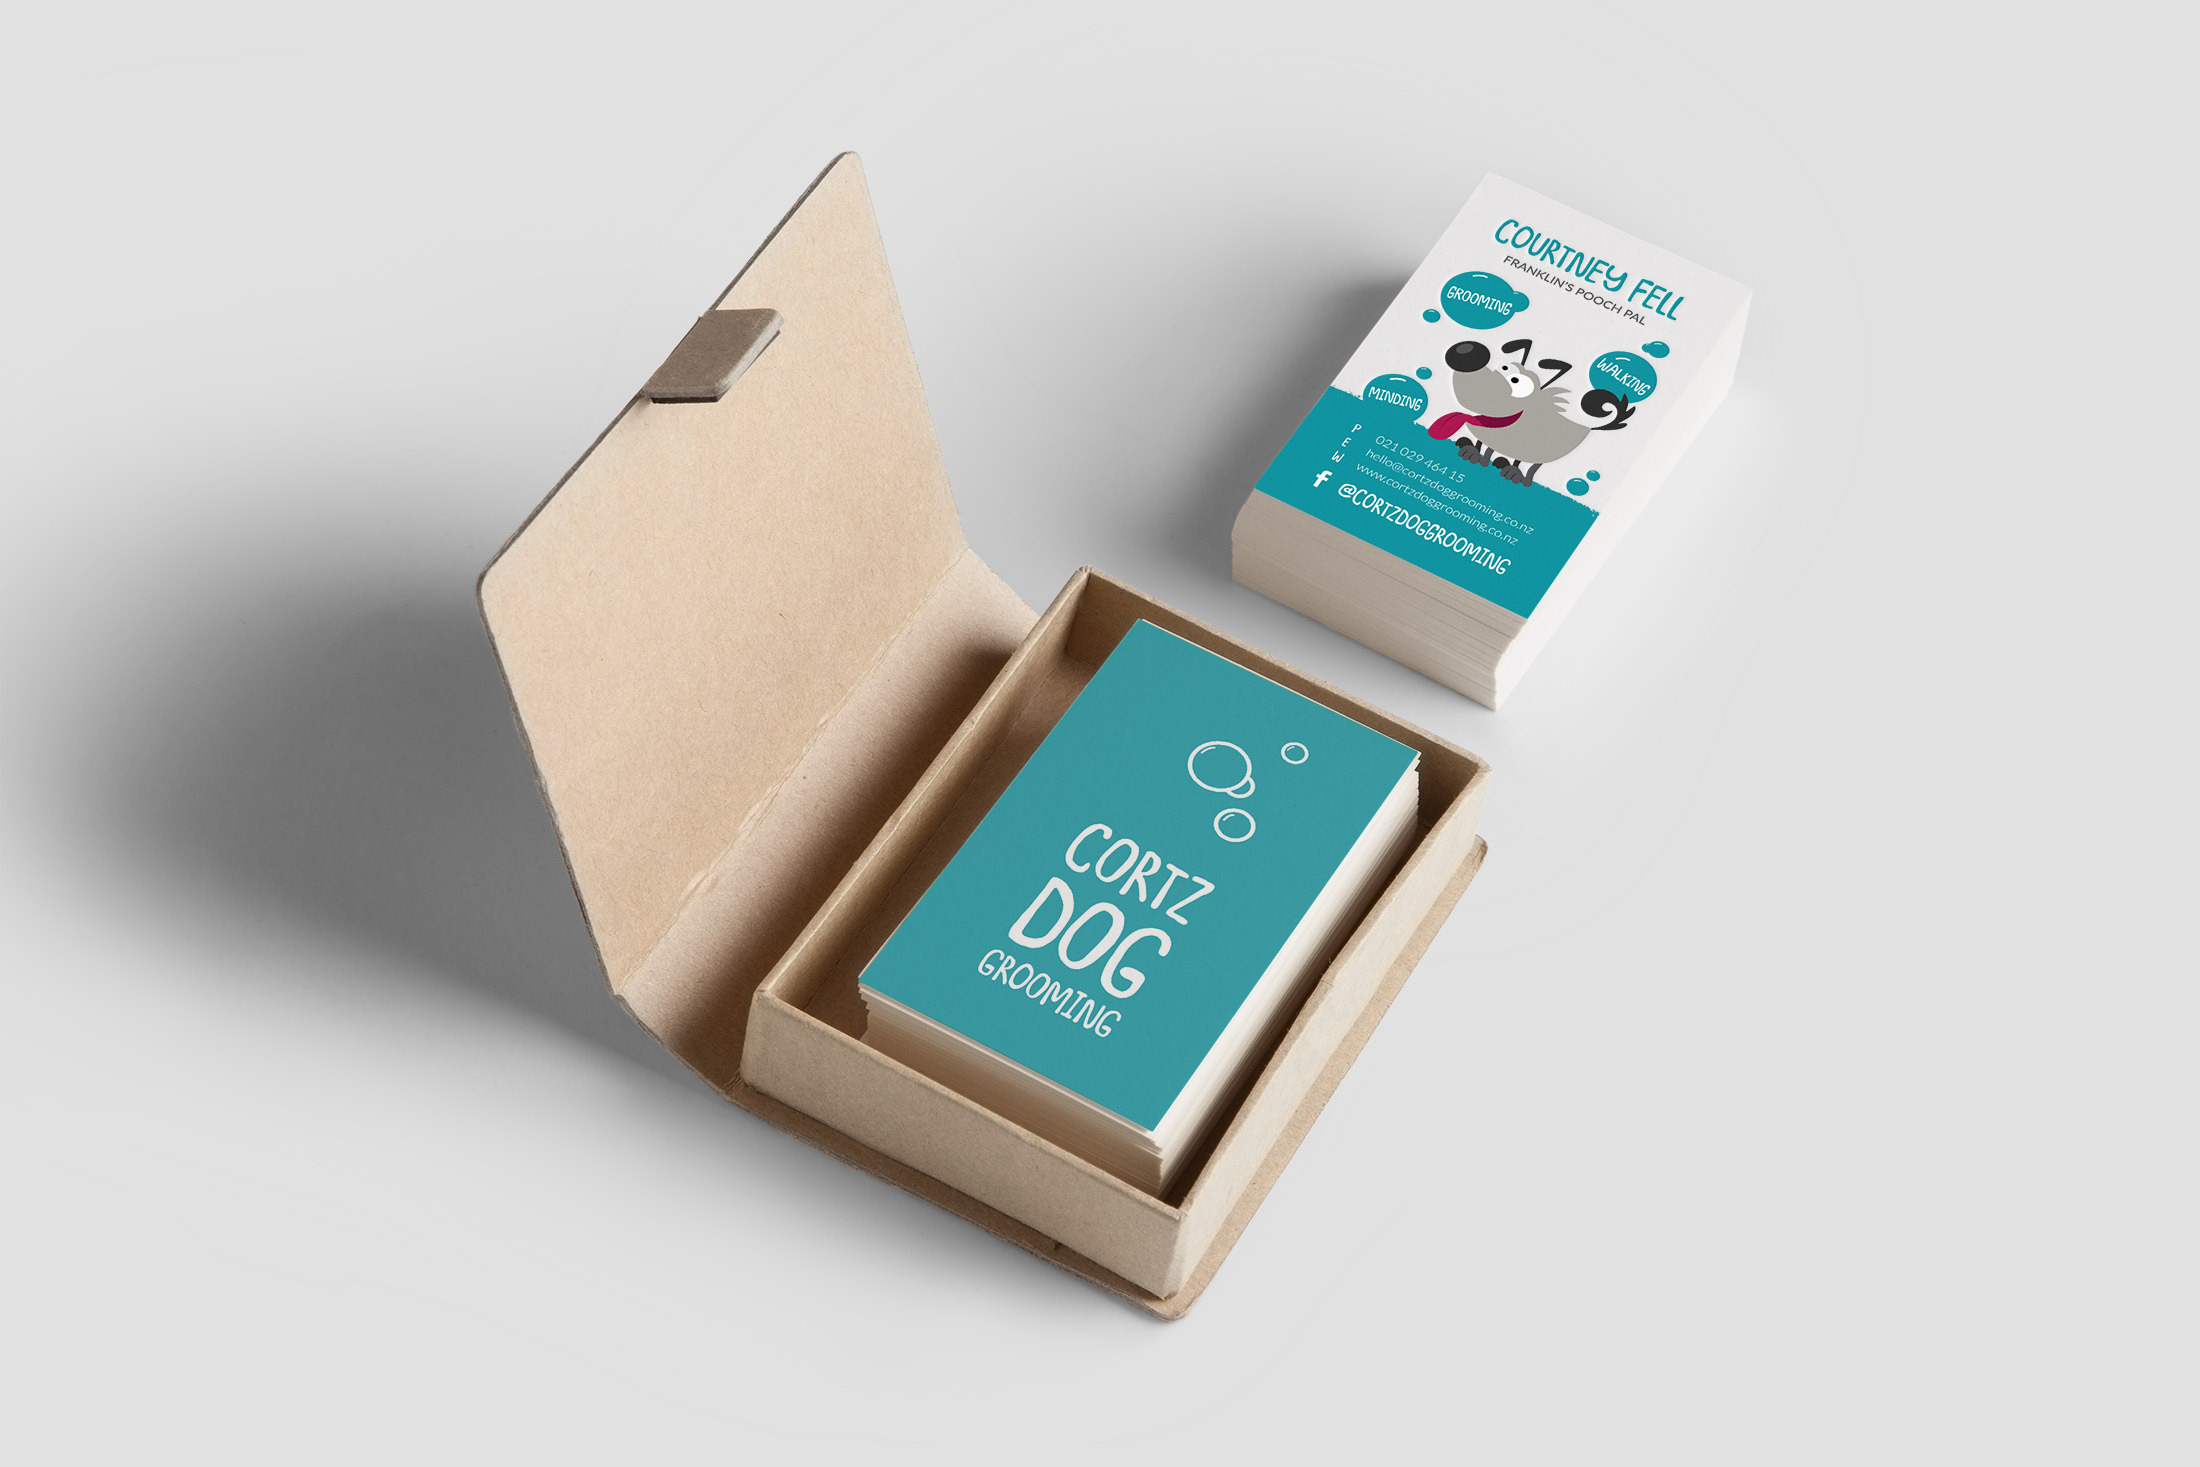 Business Card Design for Cortz Dog Grooming